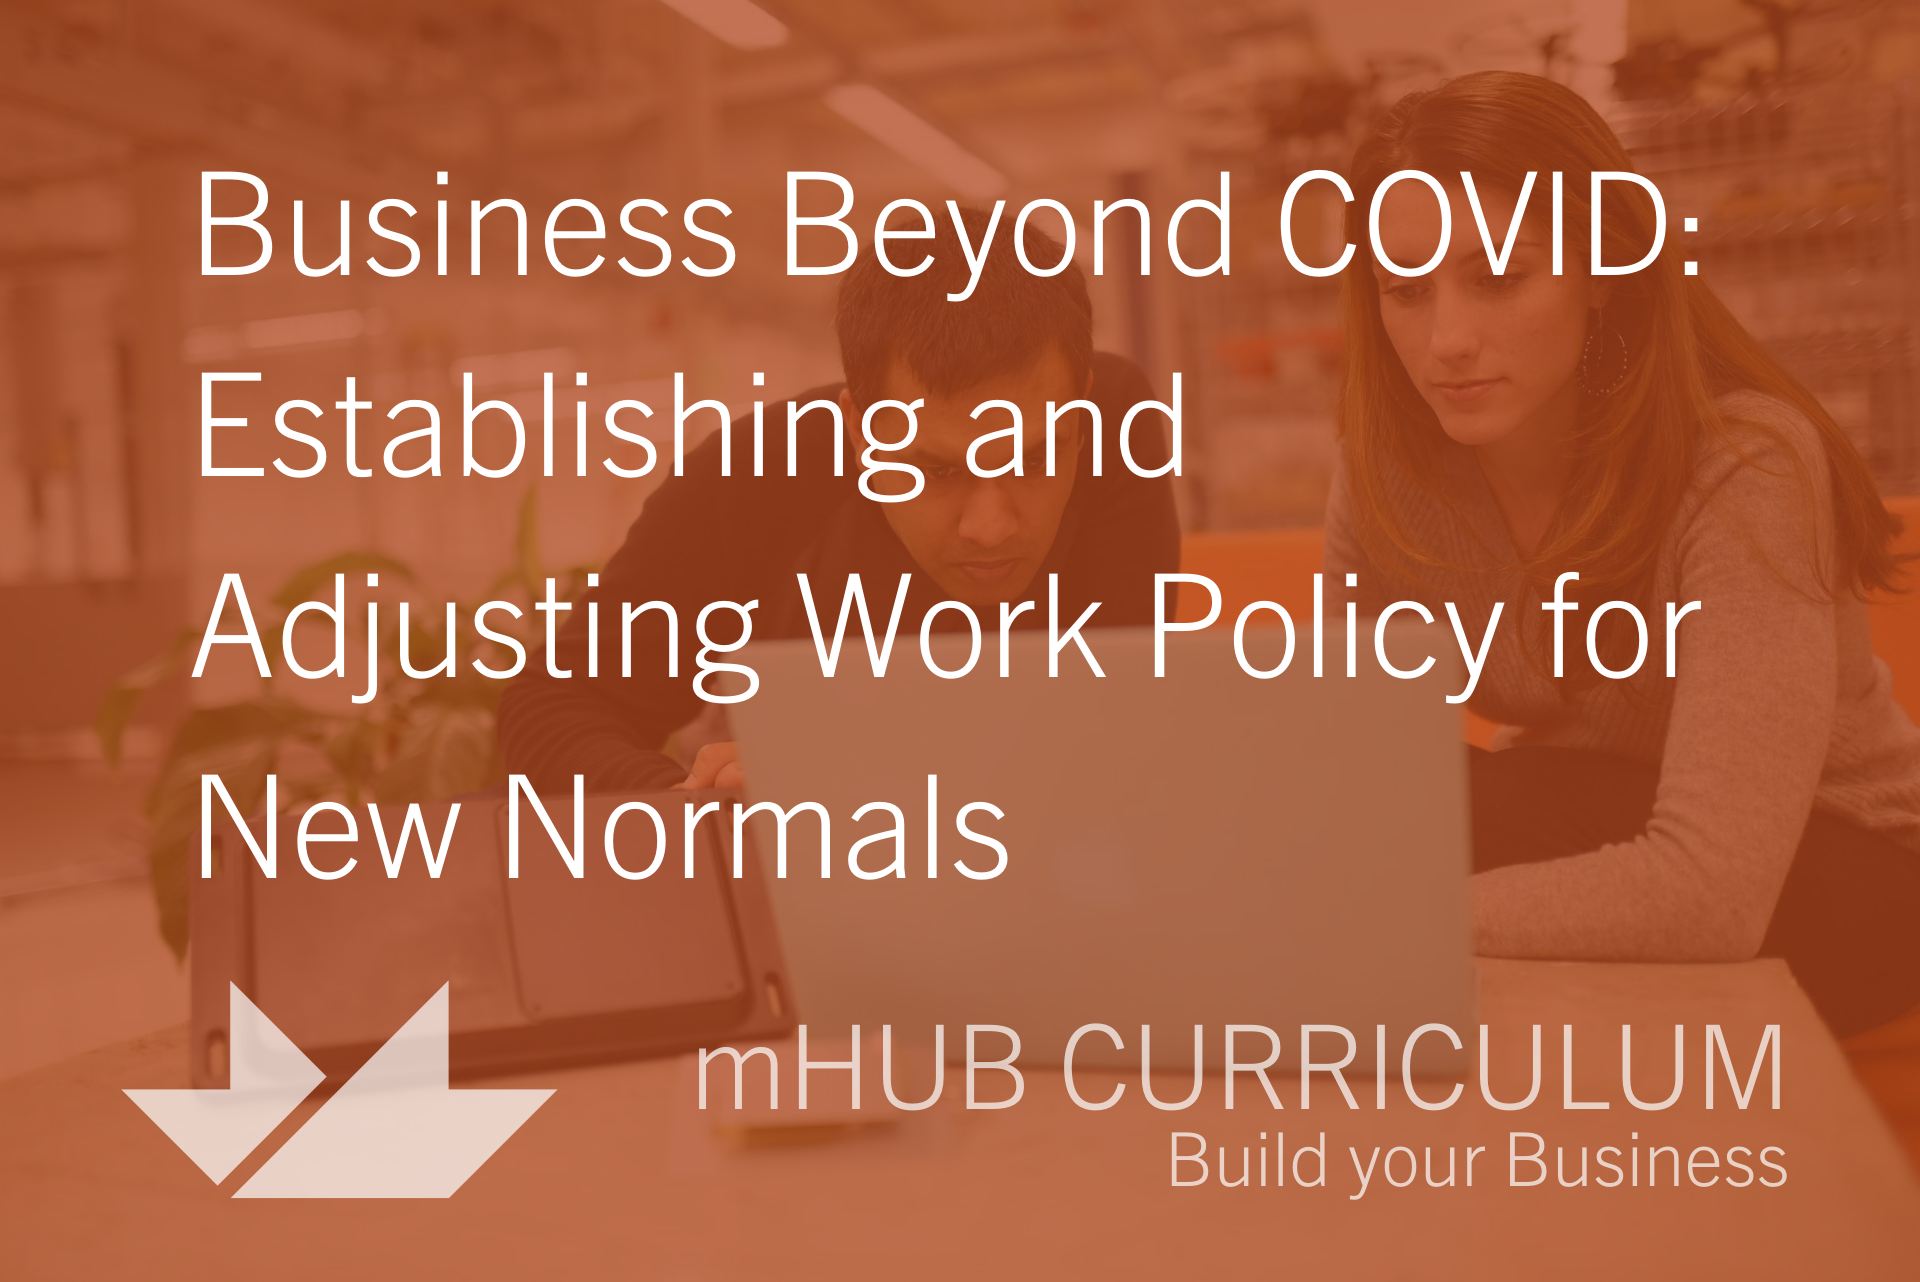 Business Beyond COVID: Establishing and Adjusting Work Policy for New Normals